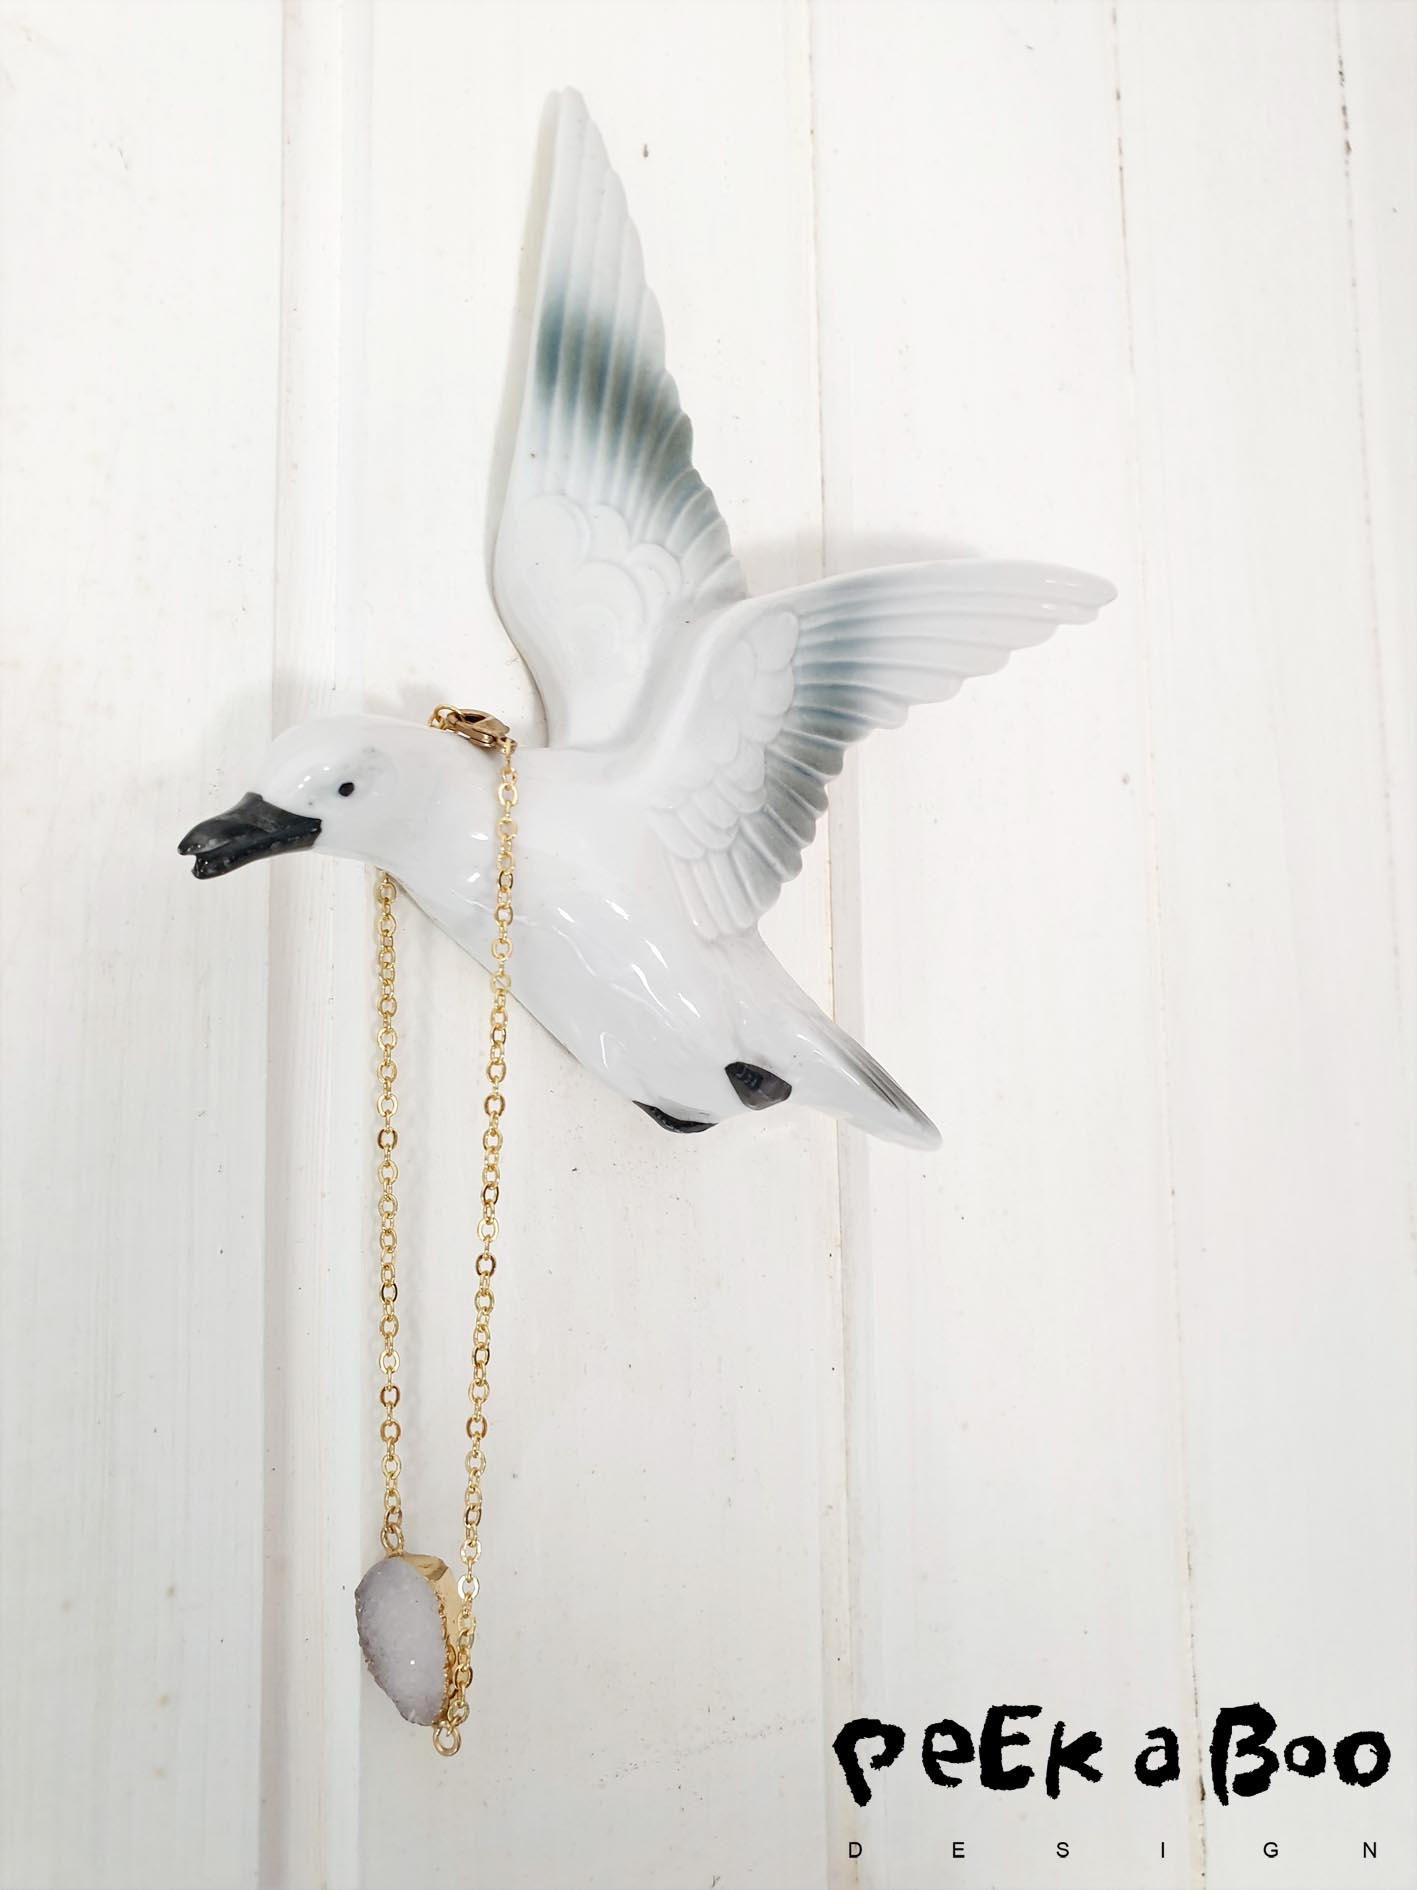 I have a thing with vintage porcelain birds, here is another one found on one of the fleamarkets I go to during the summertime. And it is perfect for hanging my anklet while not wearing it.